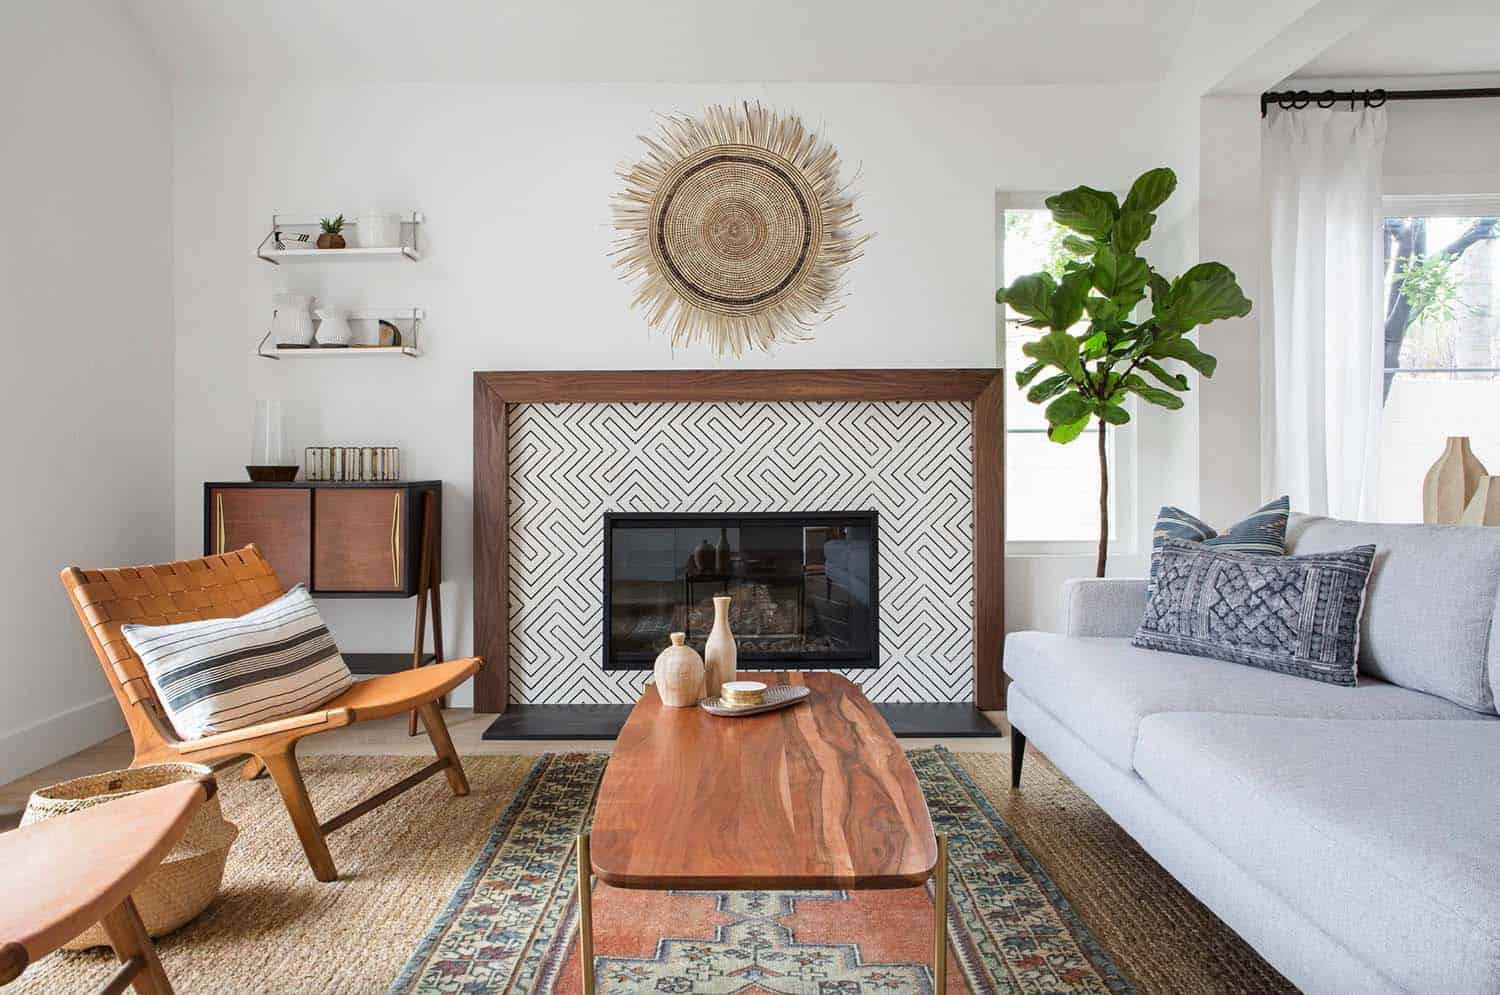 California Eclectic Home-Lindye Galloway Interiors-05-1 Kindesign